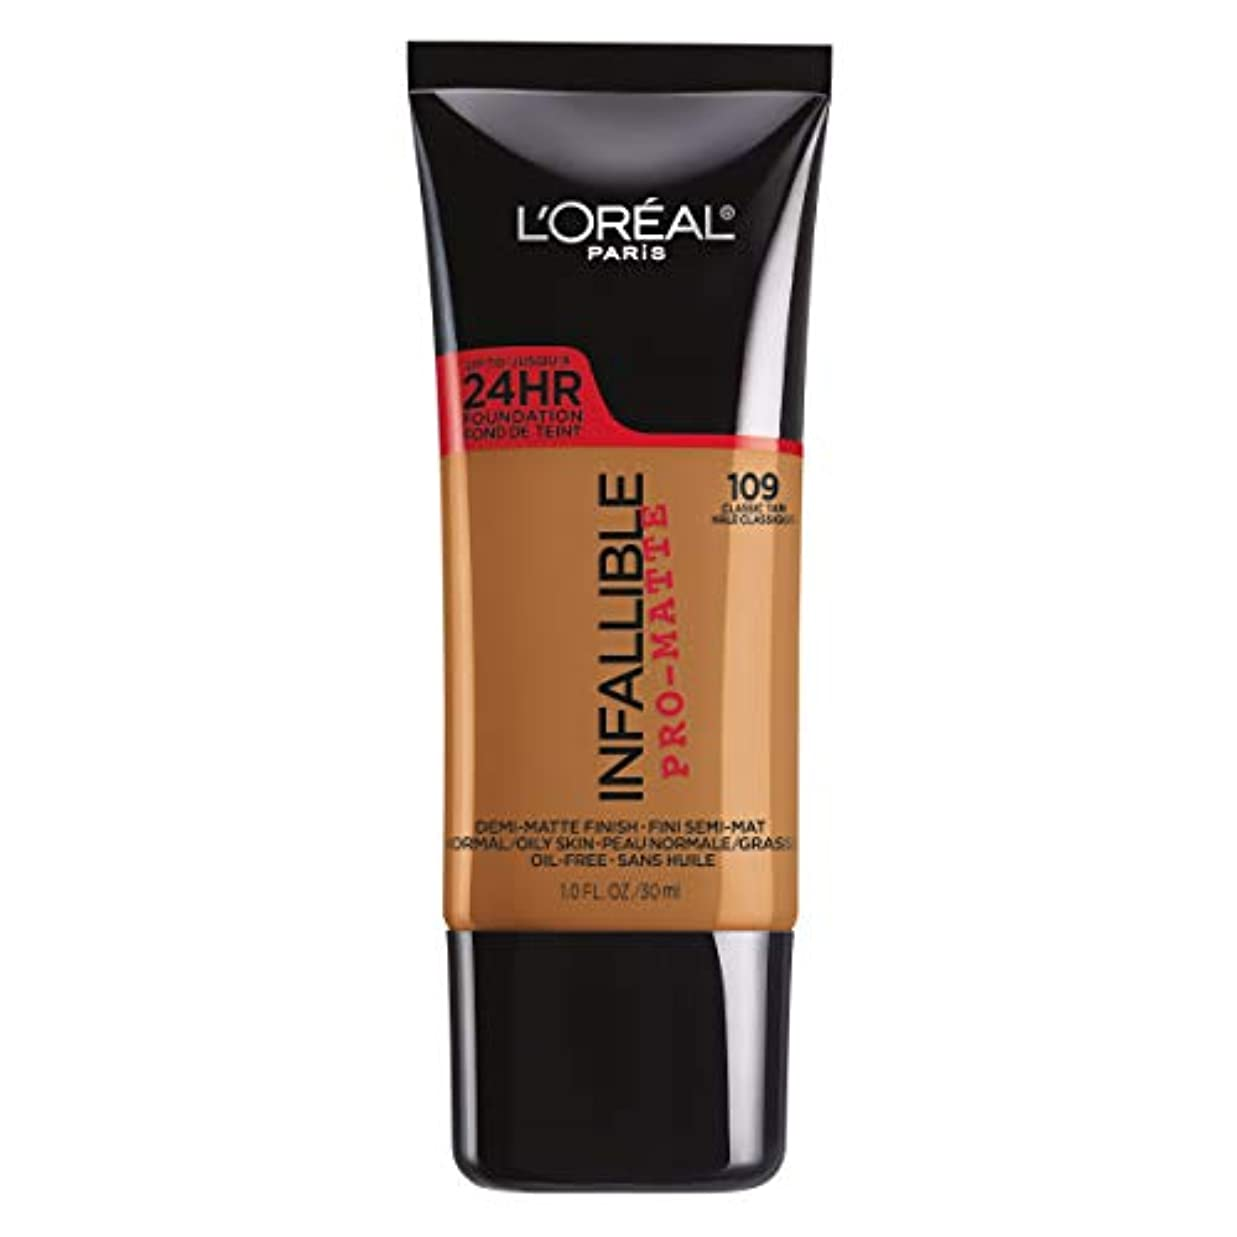 道を作る散る脆いL'Oreal Paris Infallible Pro-Matte Foundation Makeup, 109 Classic Tan, 1 fl. oz[並行輸入品]